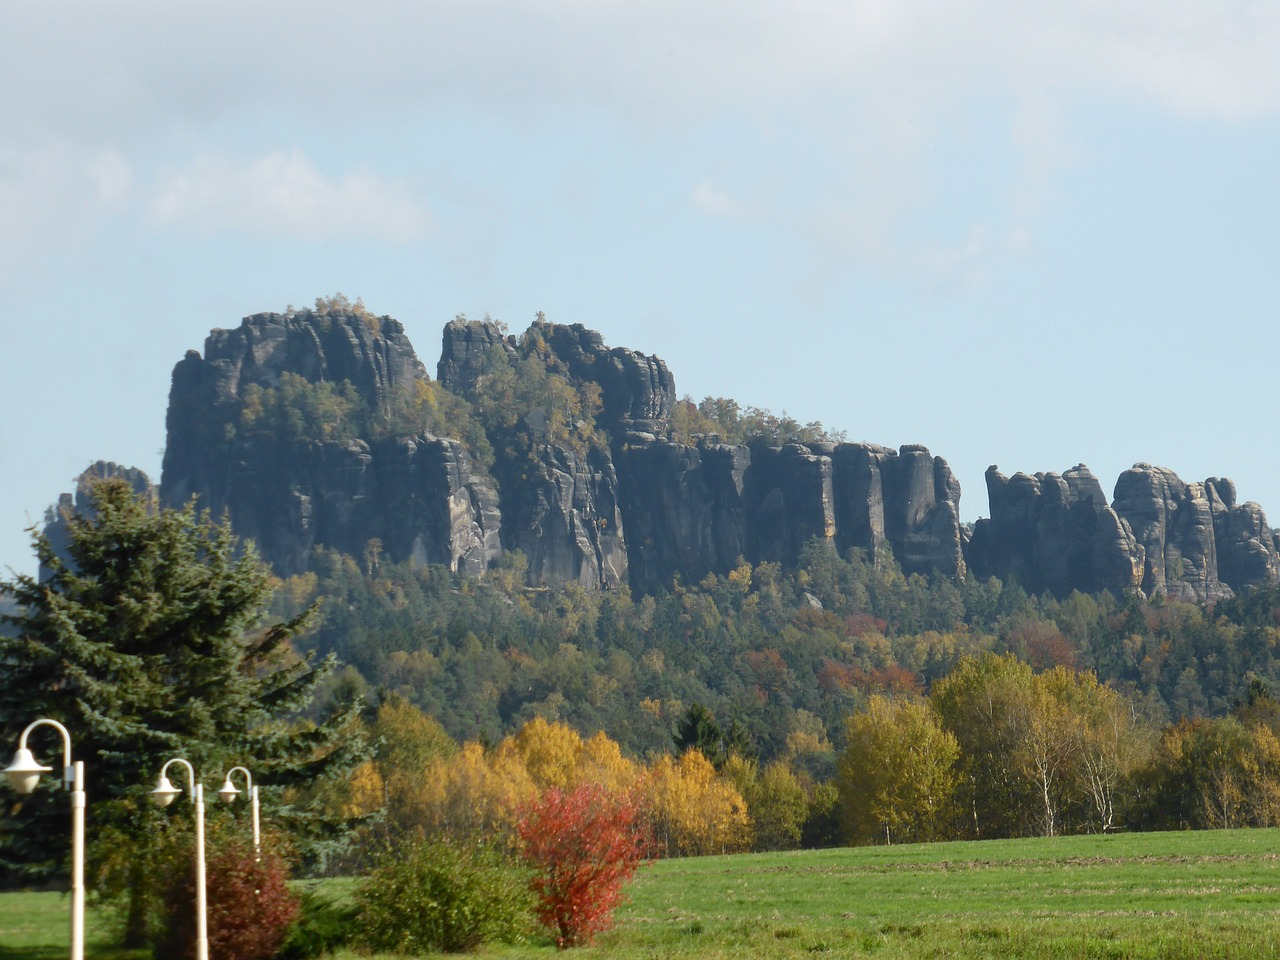 saxon-switzerland-197866 1280